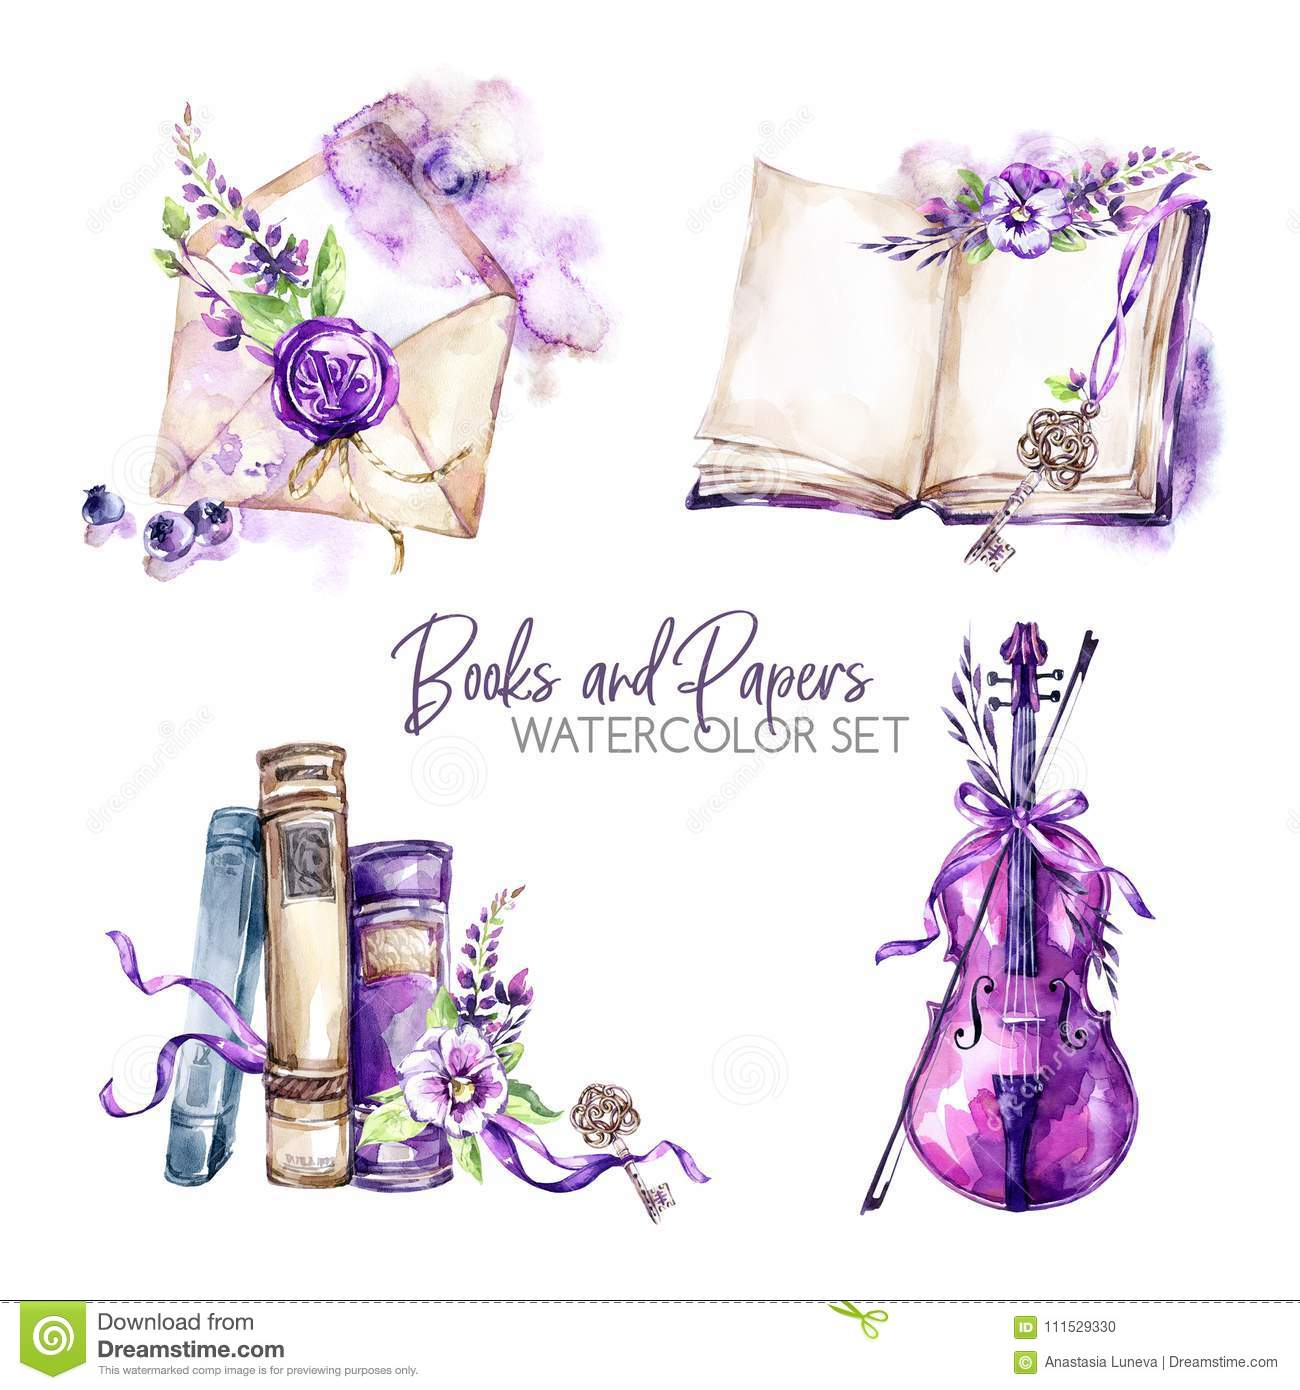 Watercolor borders set with old books, envelope, key, violin, flowers and berries. Original hand drawn illustration in